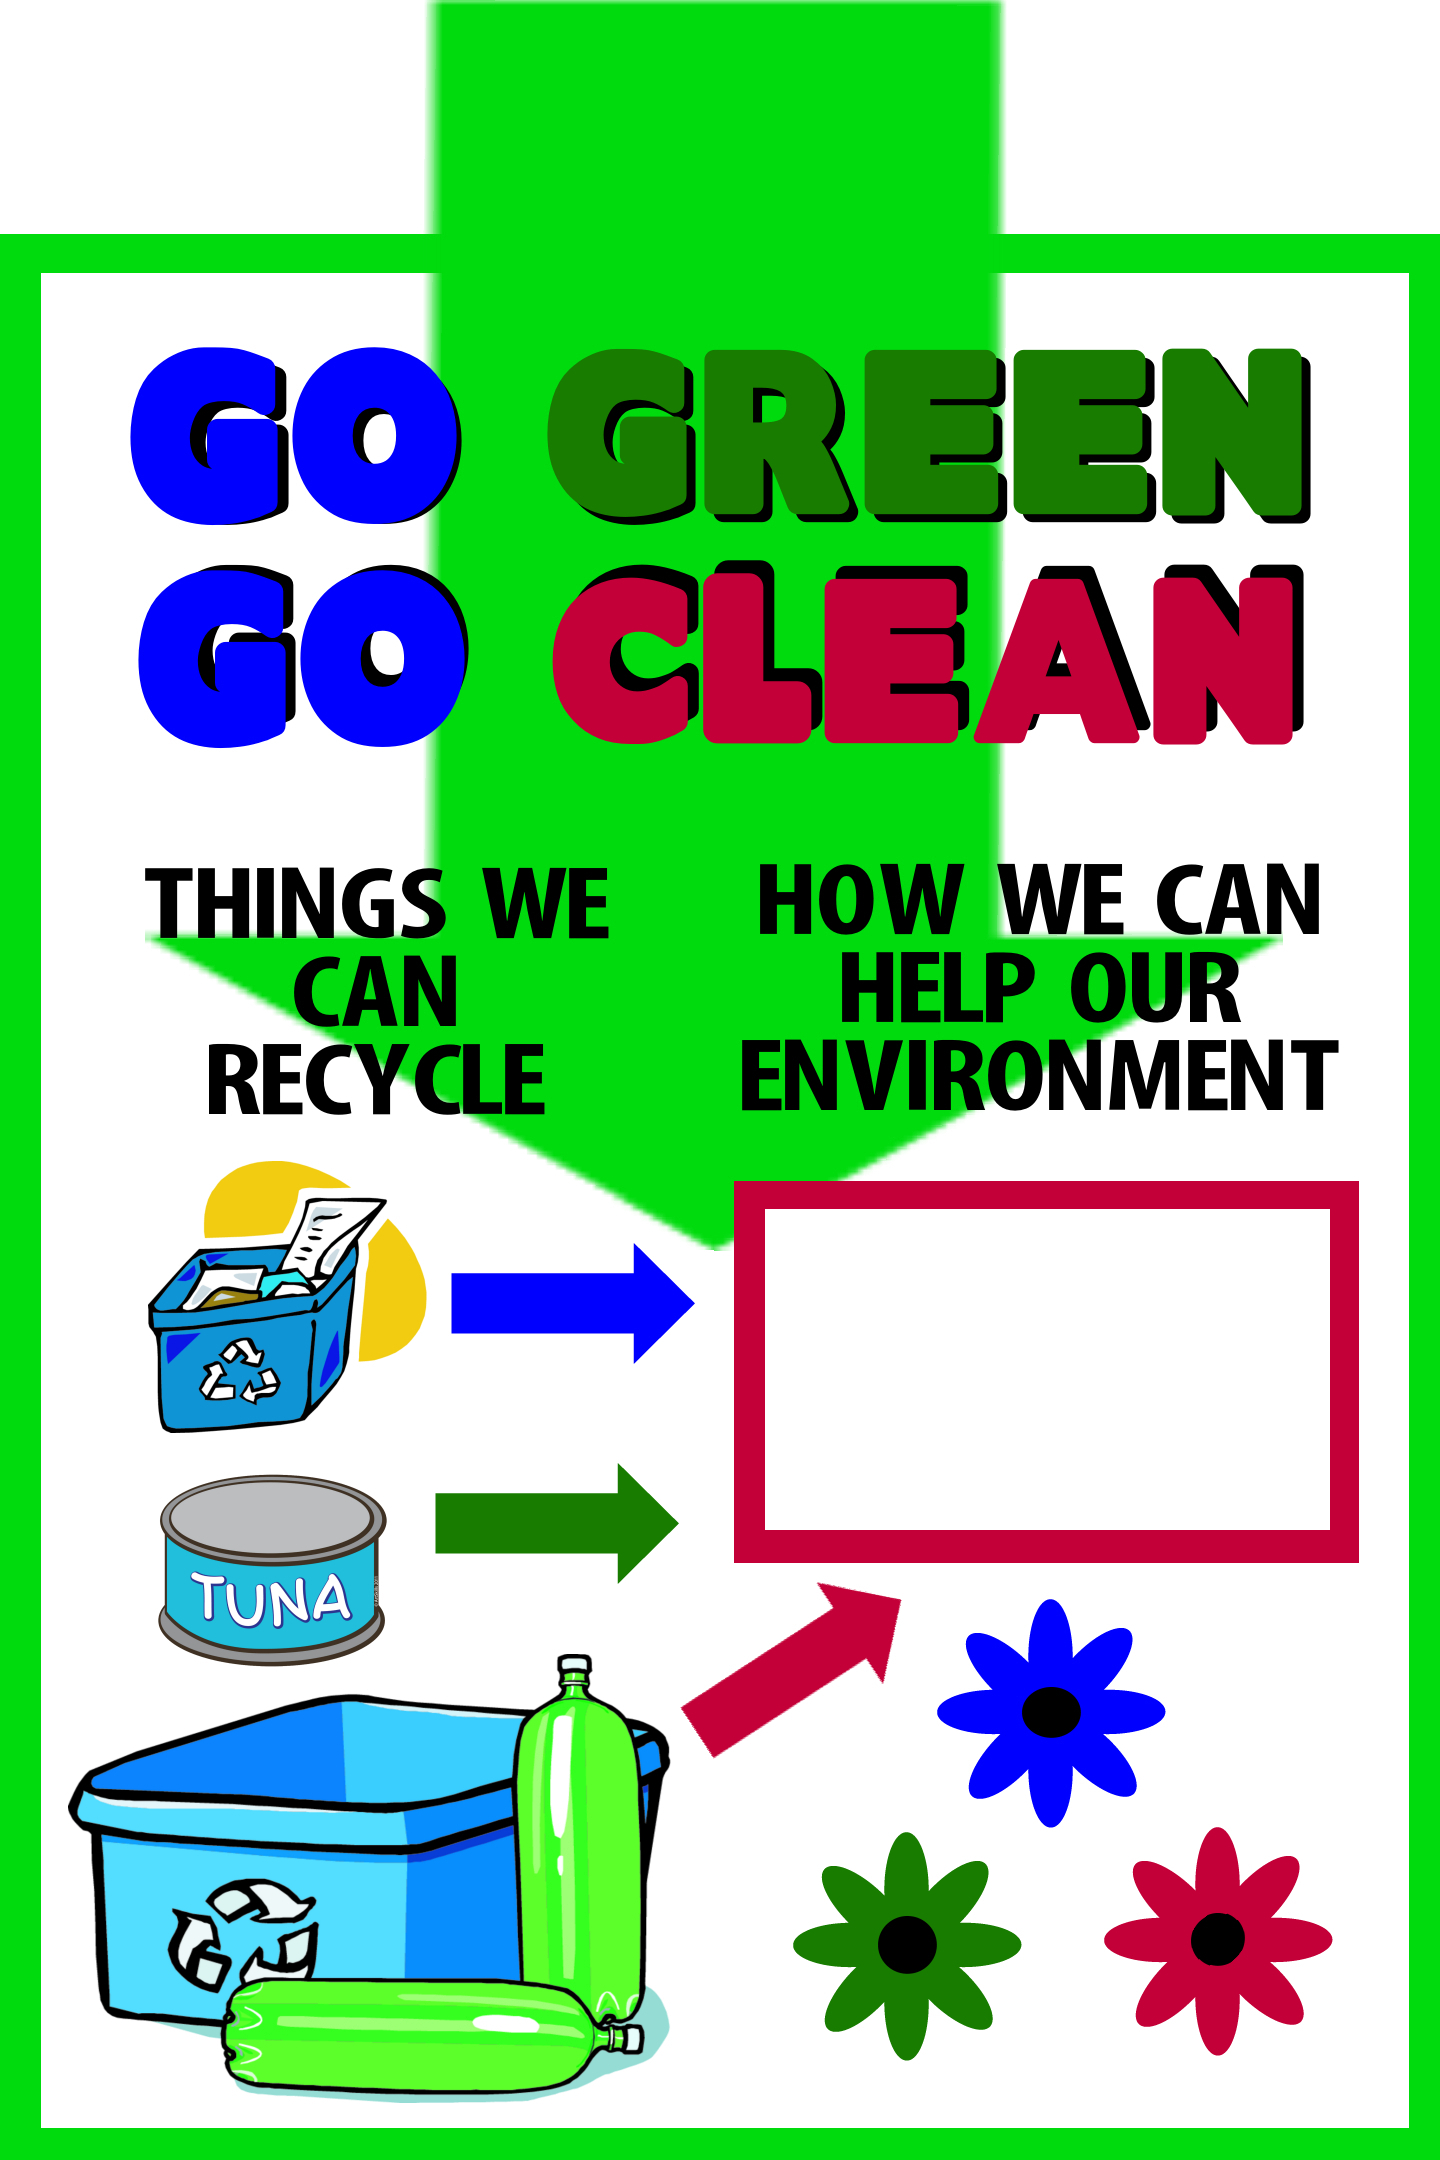 Make a Poster About Recycling | Go Green Go Clean Poster Ideas for School Project Poster Design Ideas  166kxo